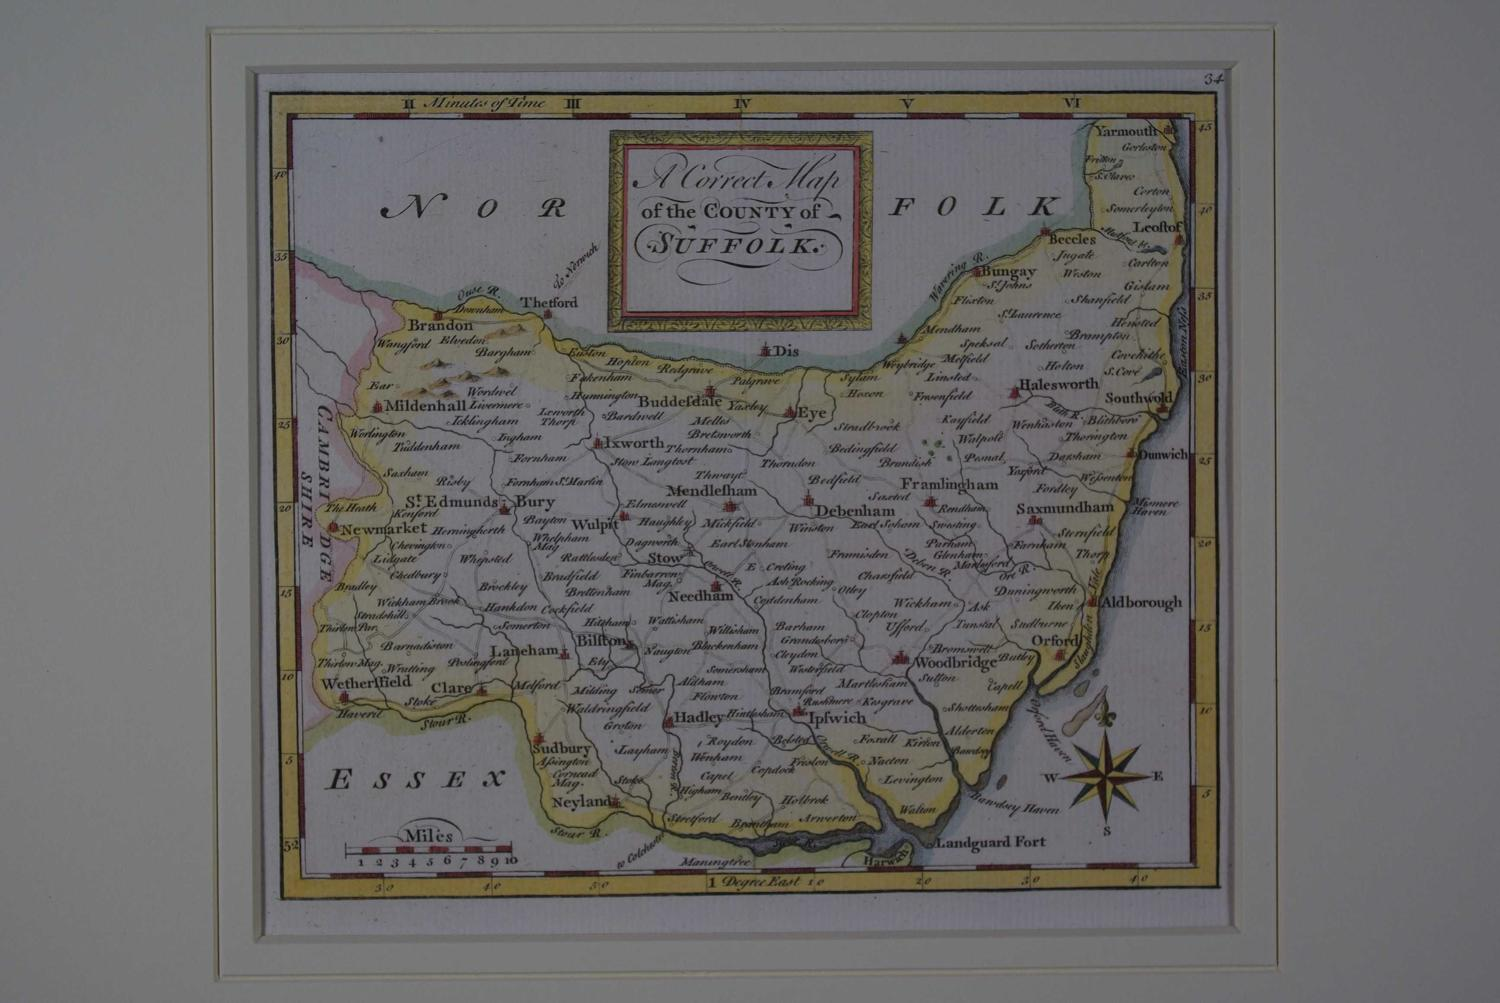 A Correct Map of the County of Suffolk by Thomas Osborne